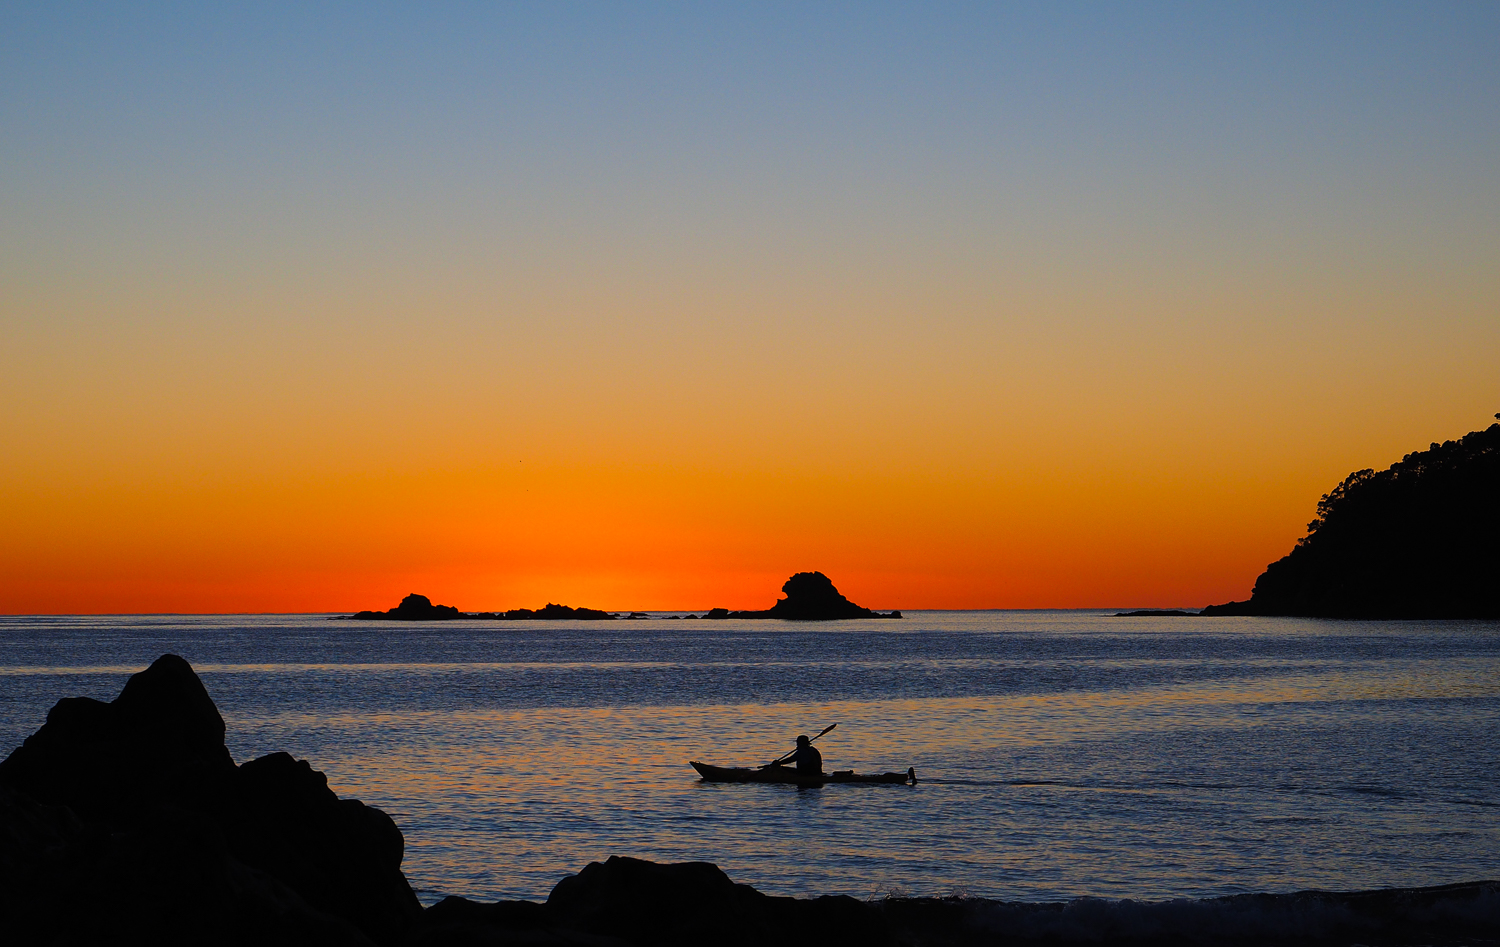 Dawn kayaker. Mount Maunganui, NZ. 1/320sec, f/7.1, ISO 200. Olympus O-MD E-M1 & Panasonic Leica DG Nocticron 42.5mm f/1.2 lens.